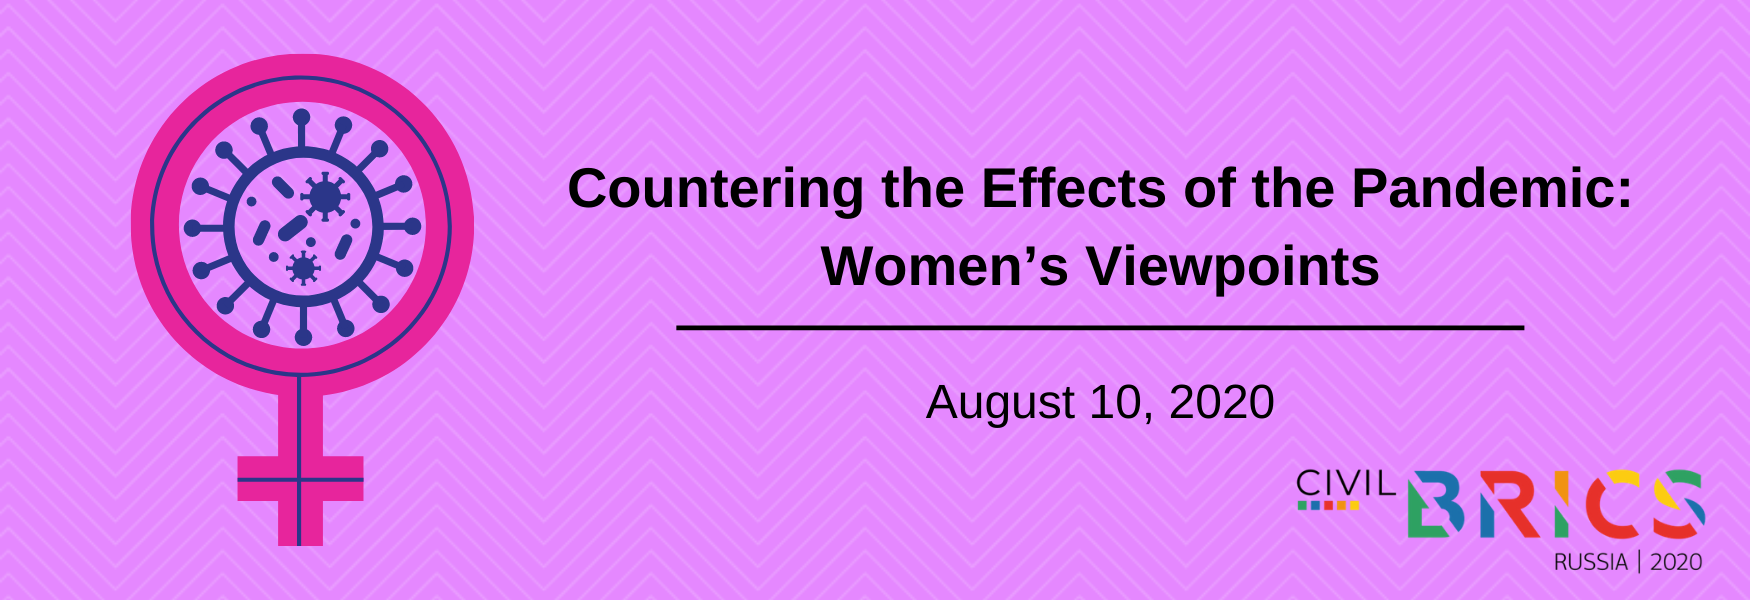 Countering the Effects of the Pandemic: Women's Viewpoints